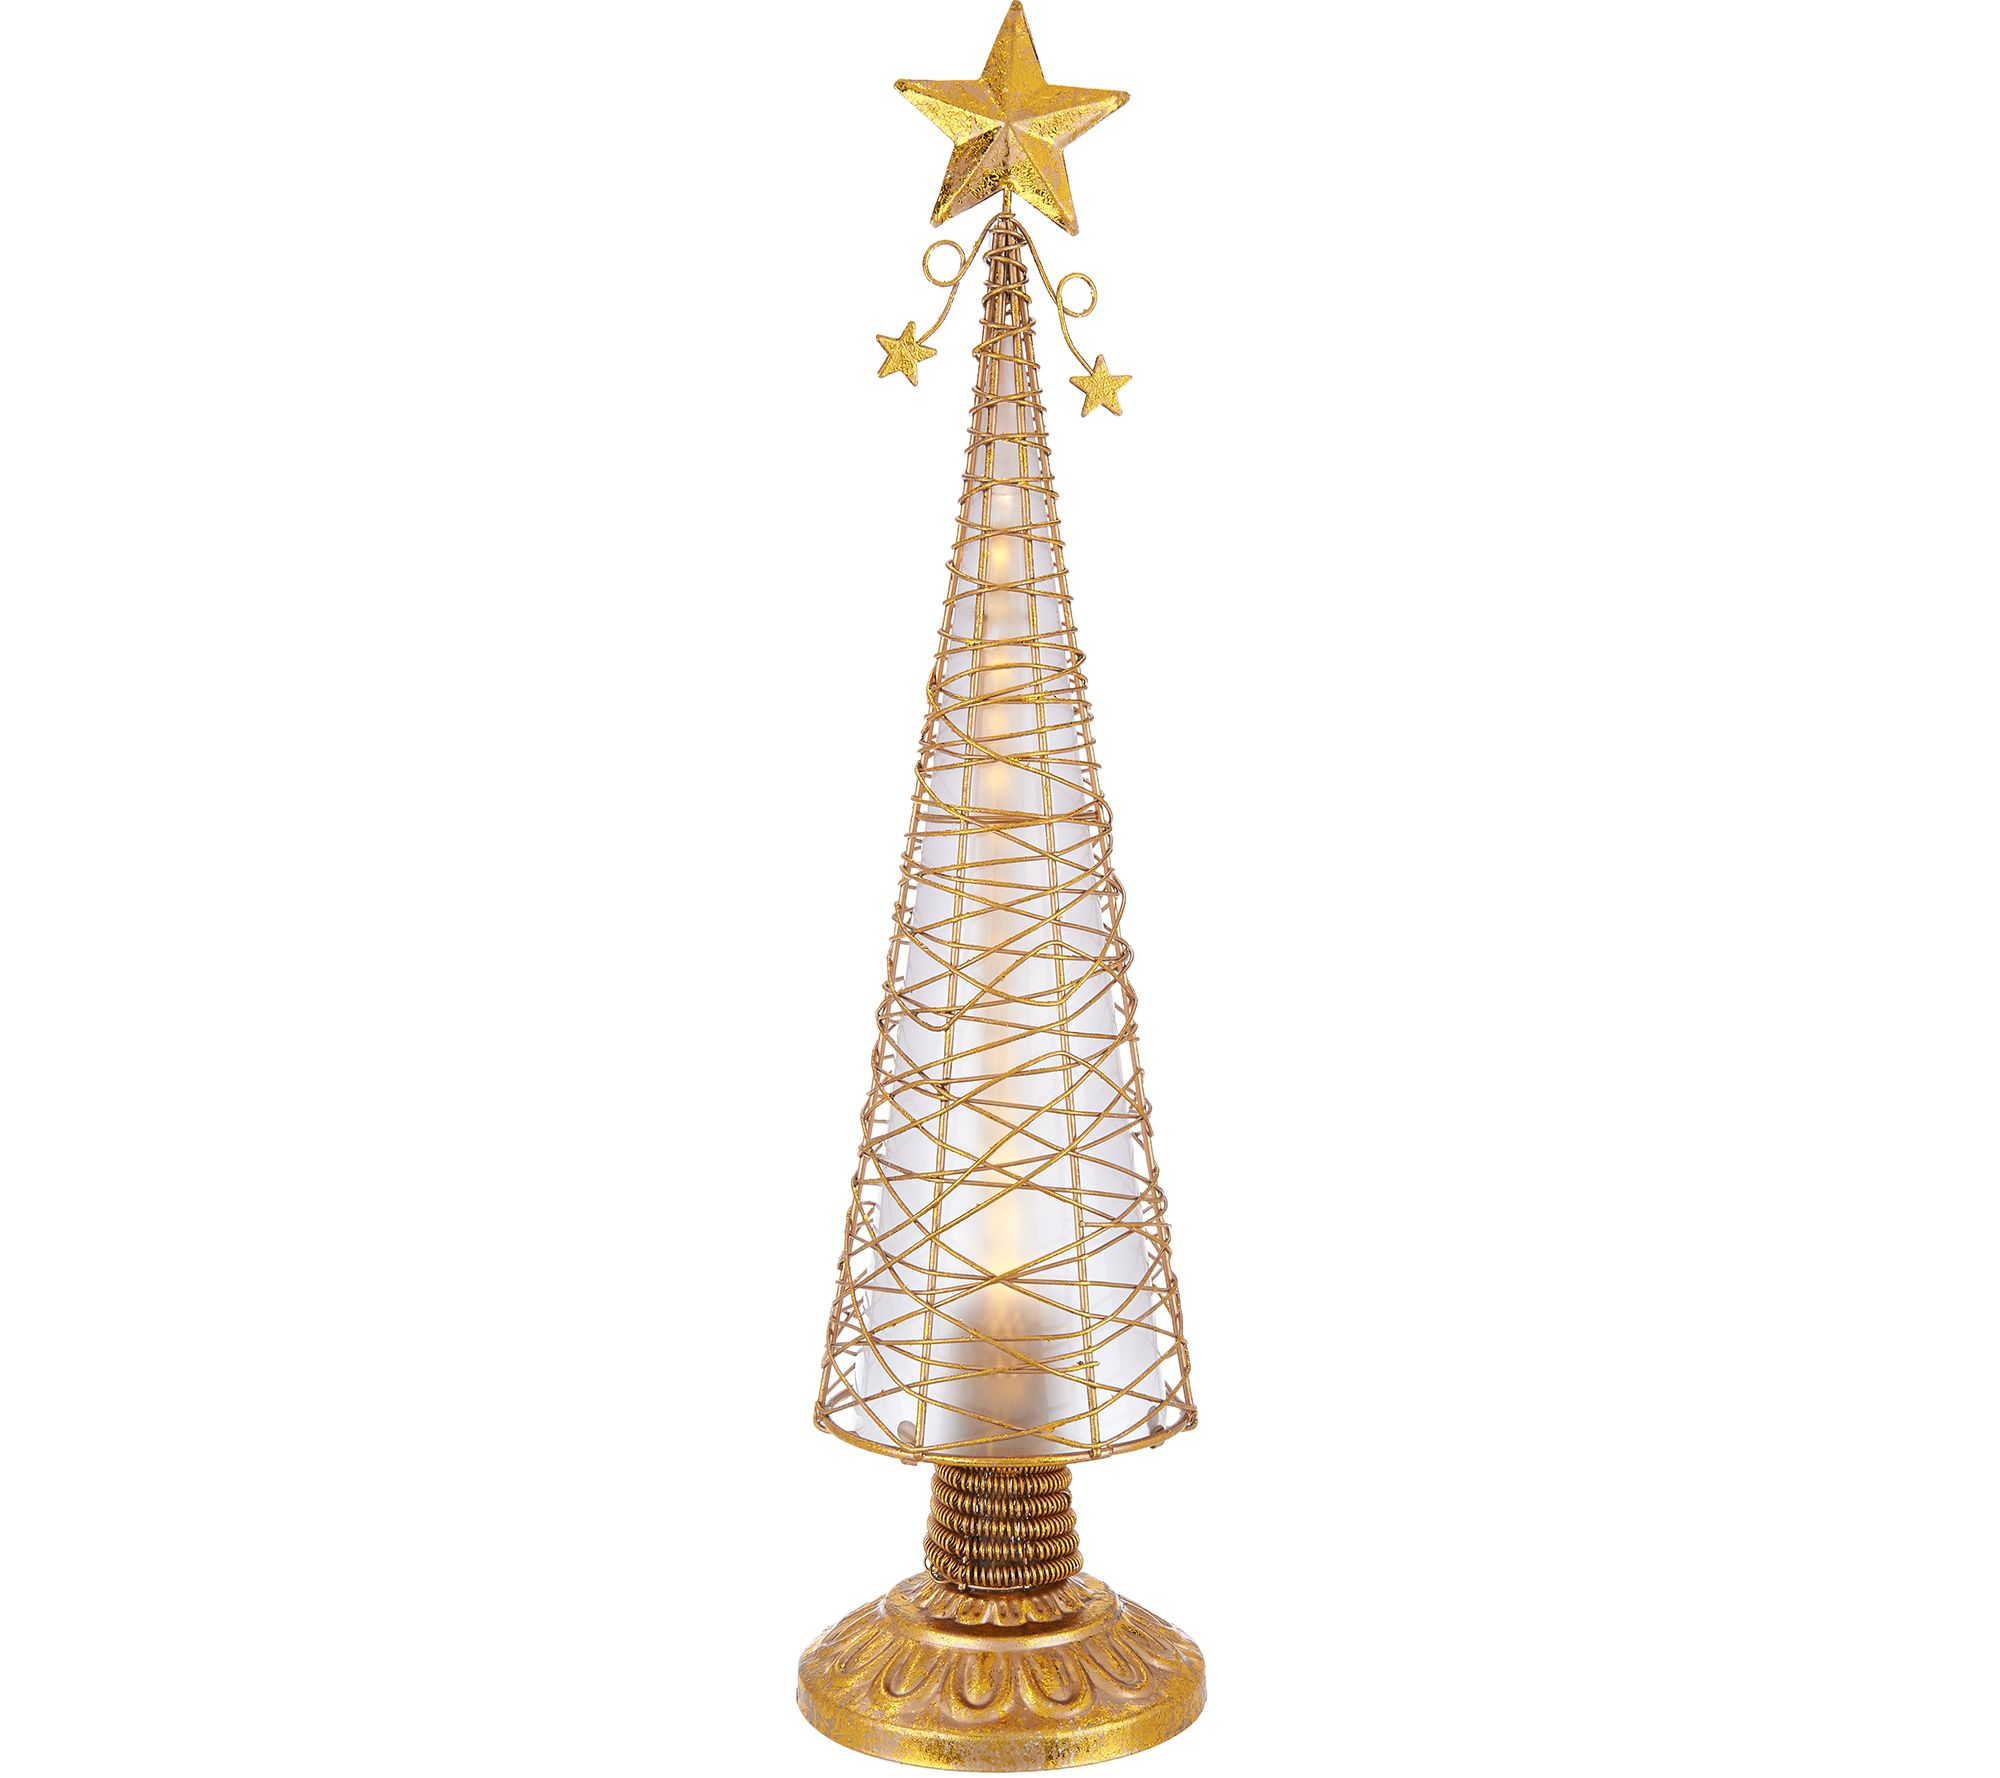 kringle express 18 illuminated chasing lights metal christmas tree with timer page 1 qvccom - Metal Christmas Decorations